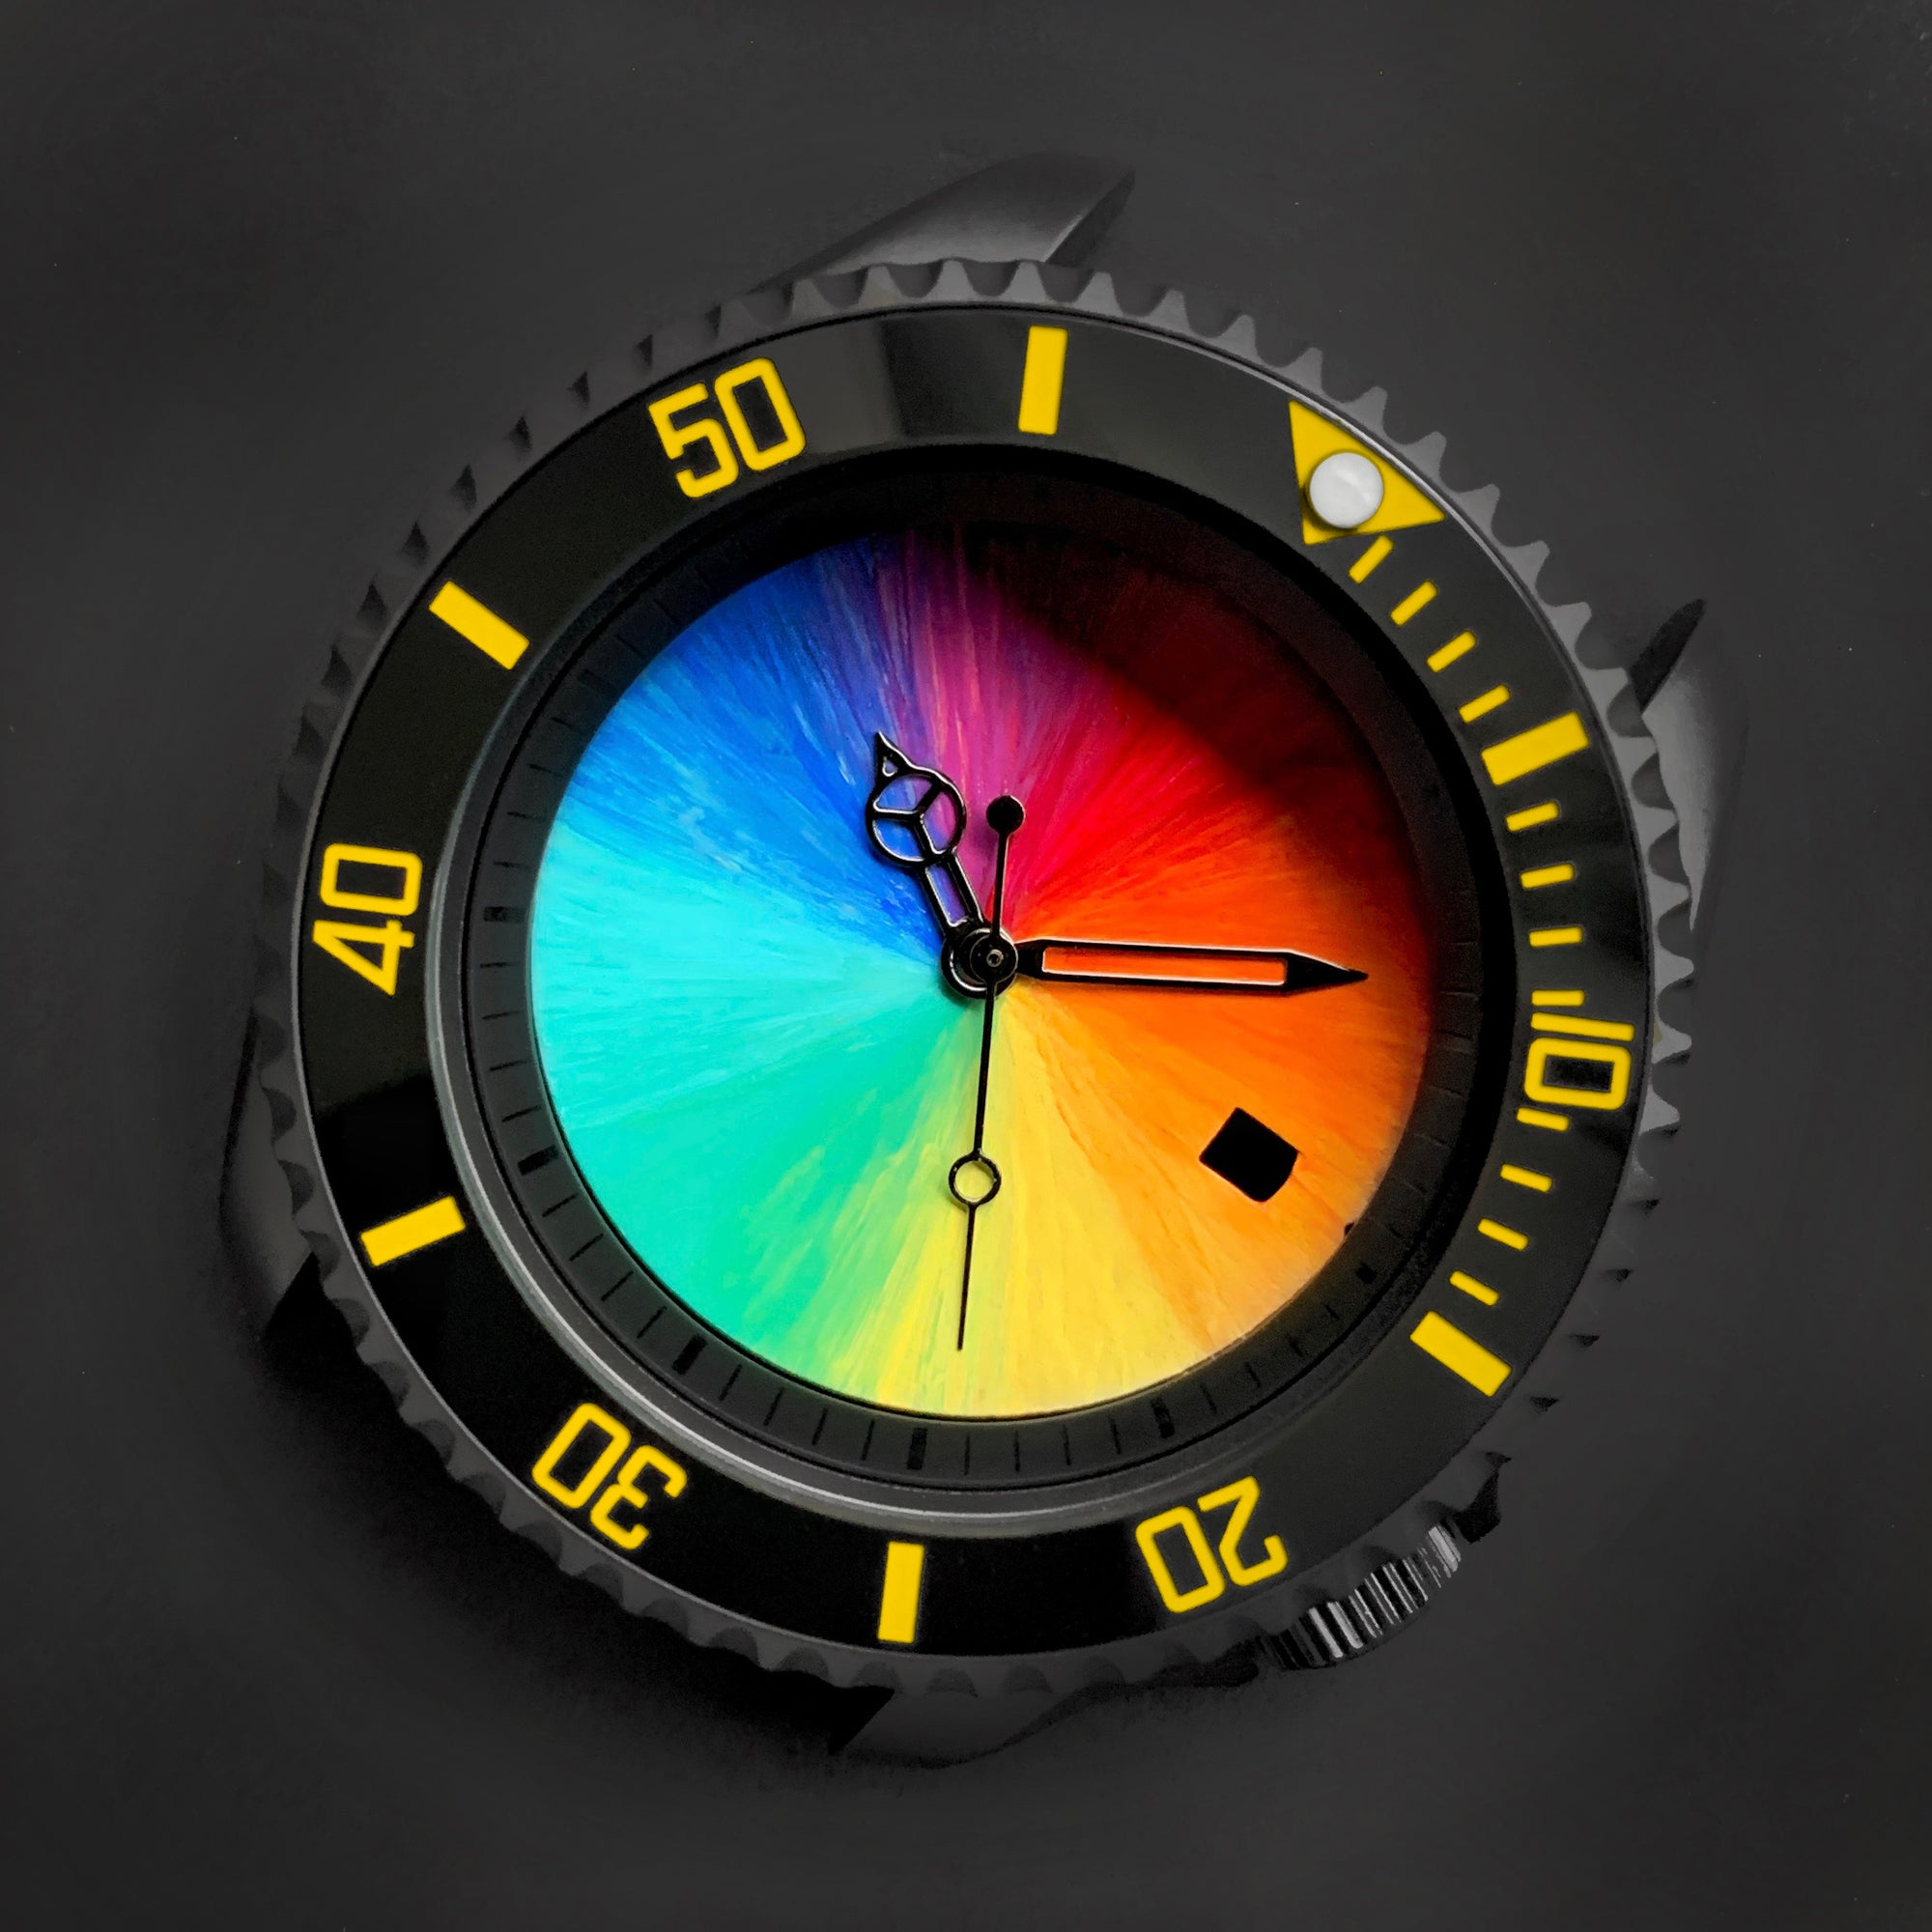 Ceramic Insert - 007 Sub Black X Yellow